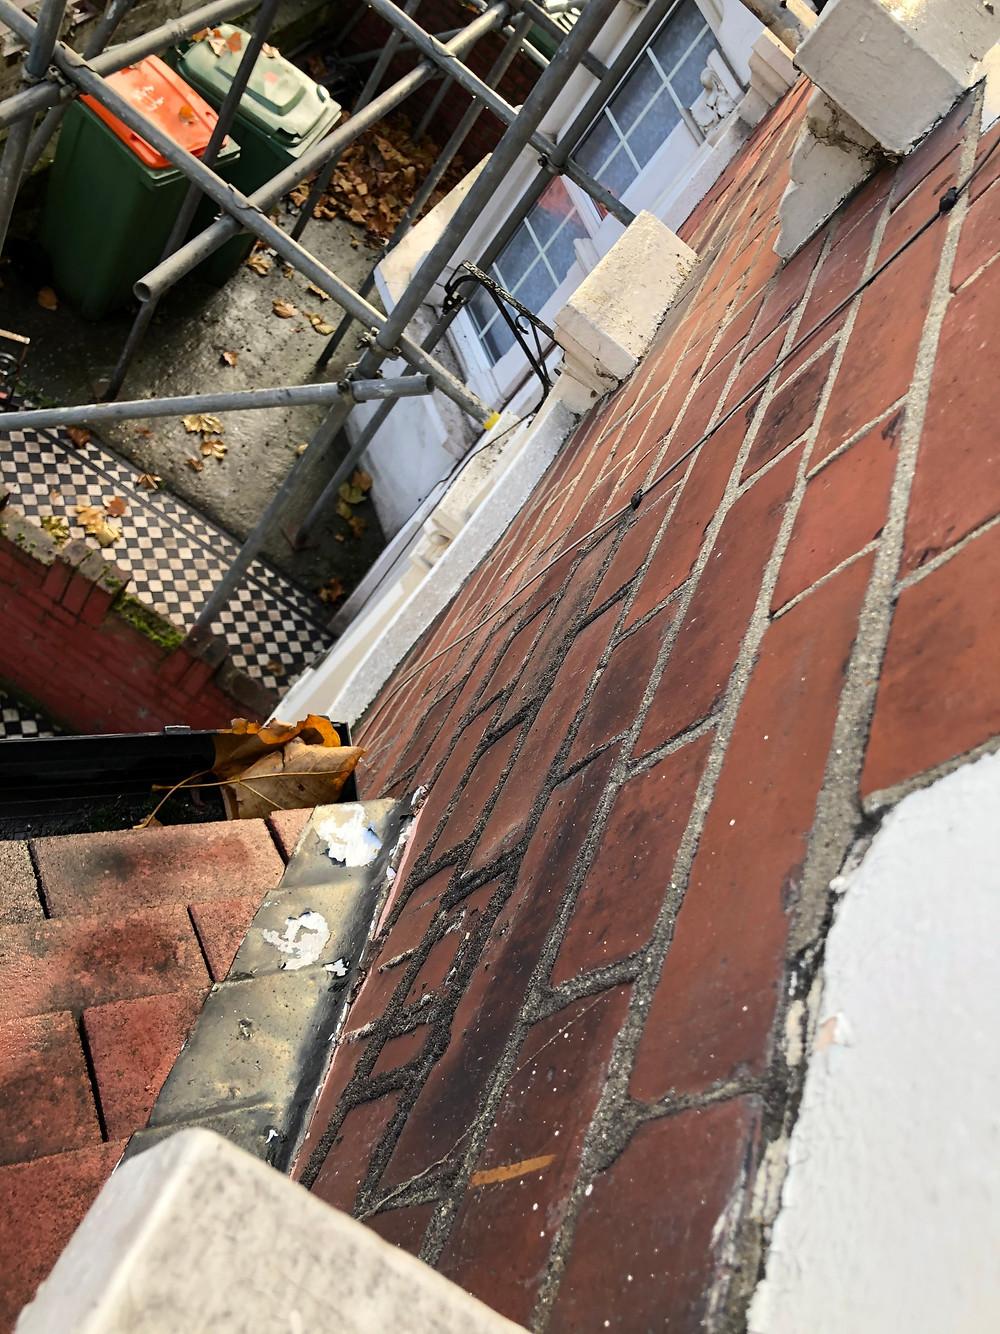 Water stained brickwork - a sign of gutter leaks